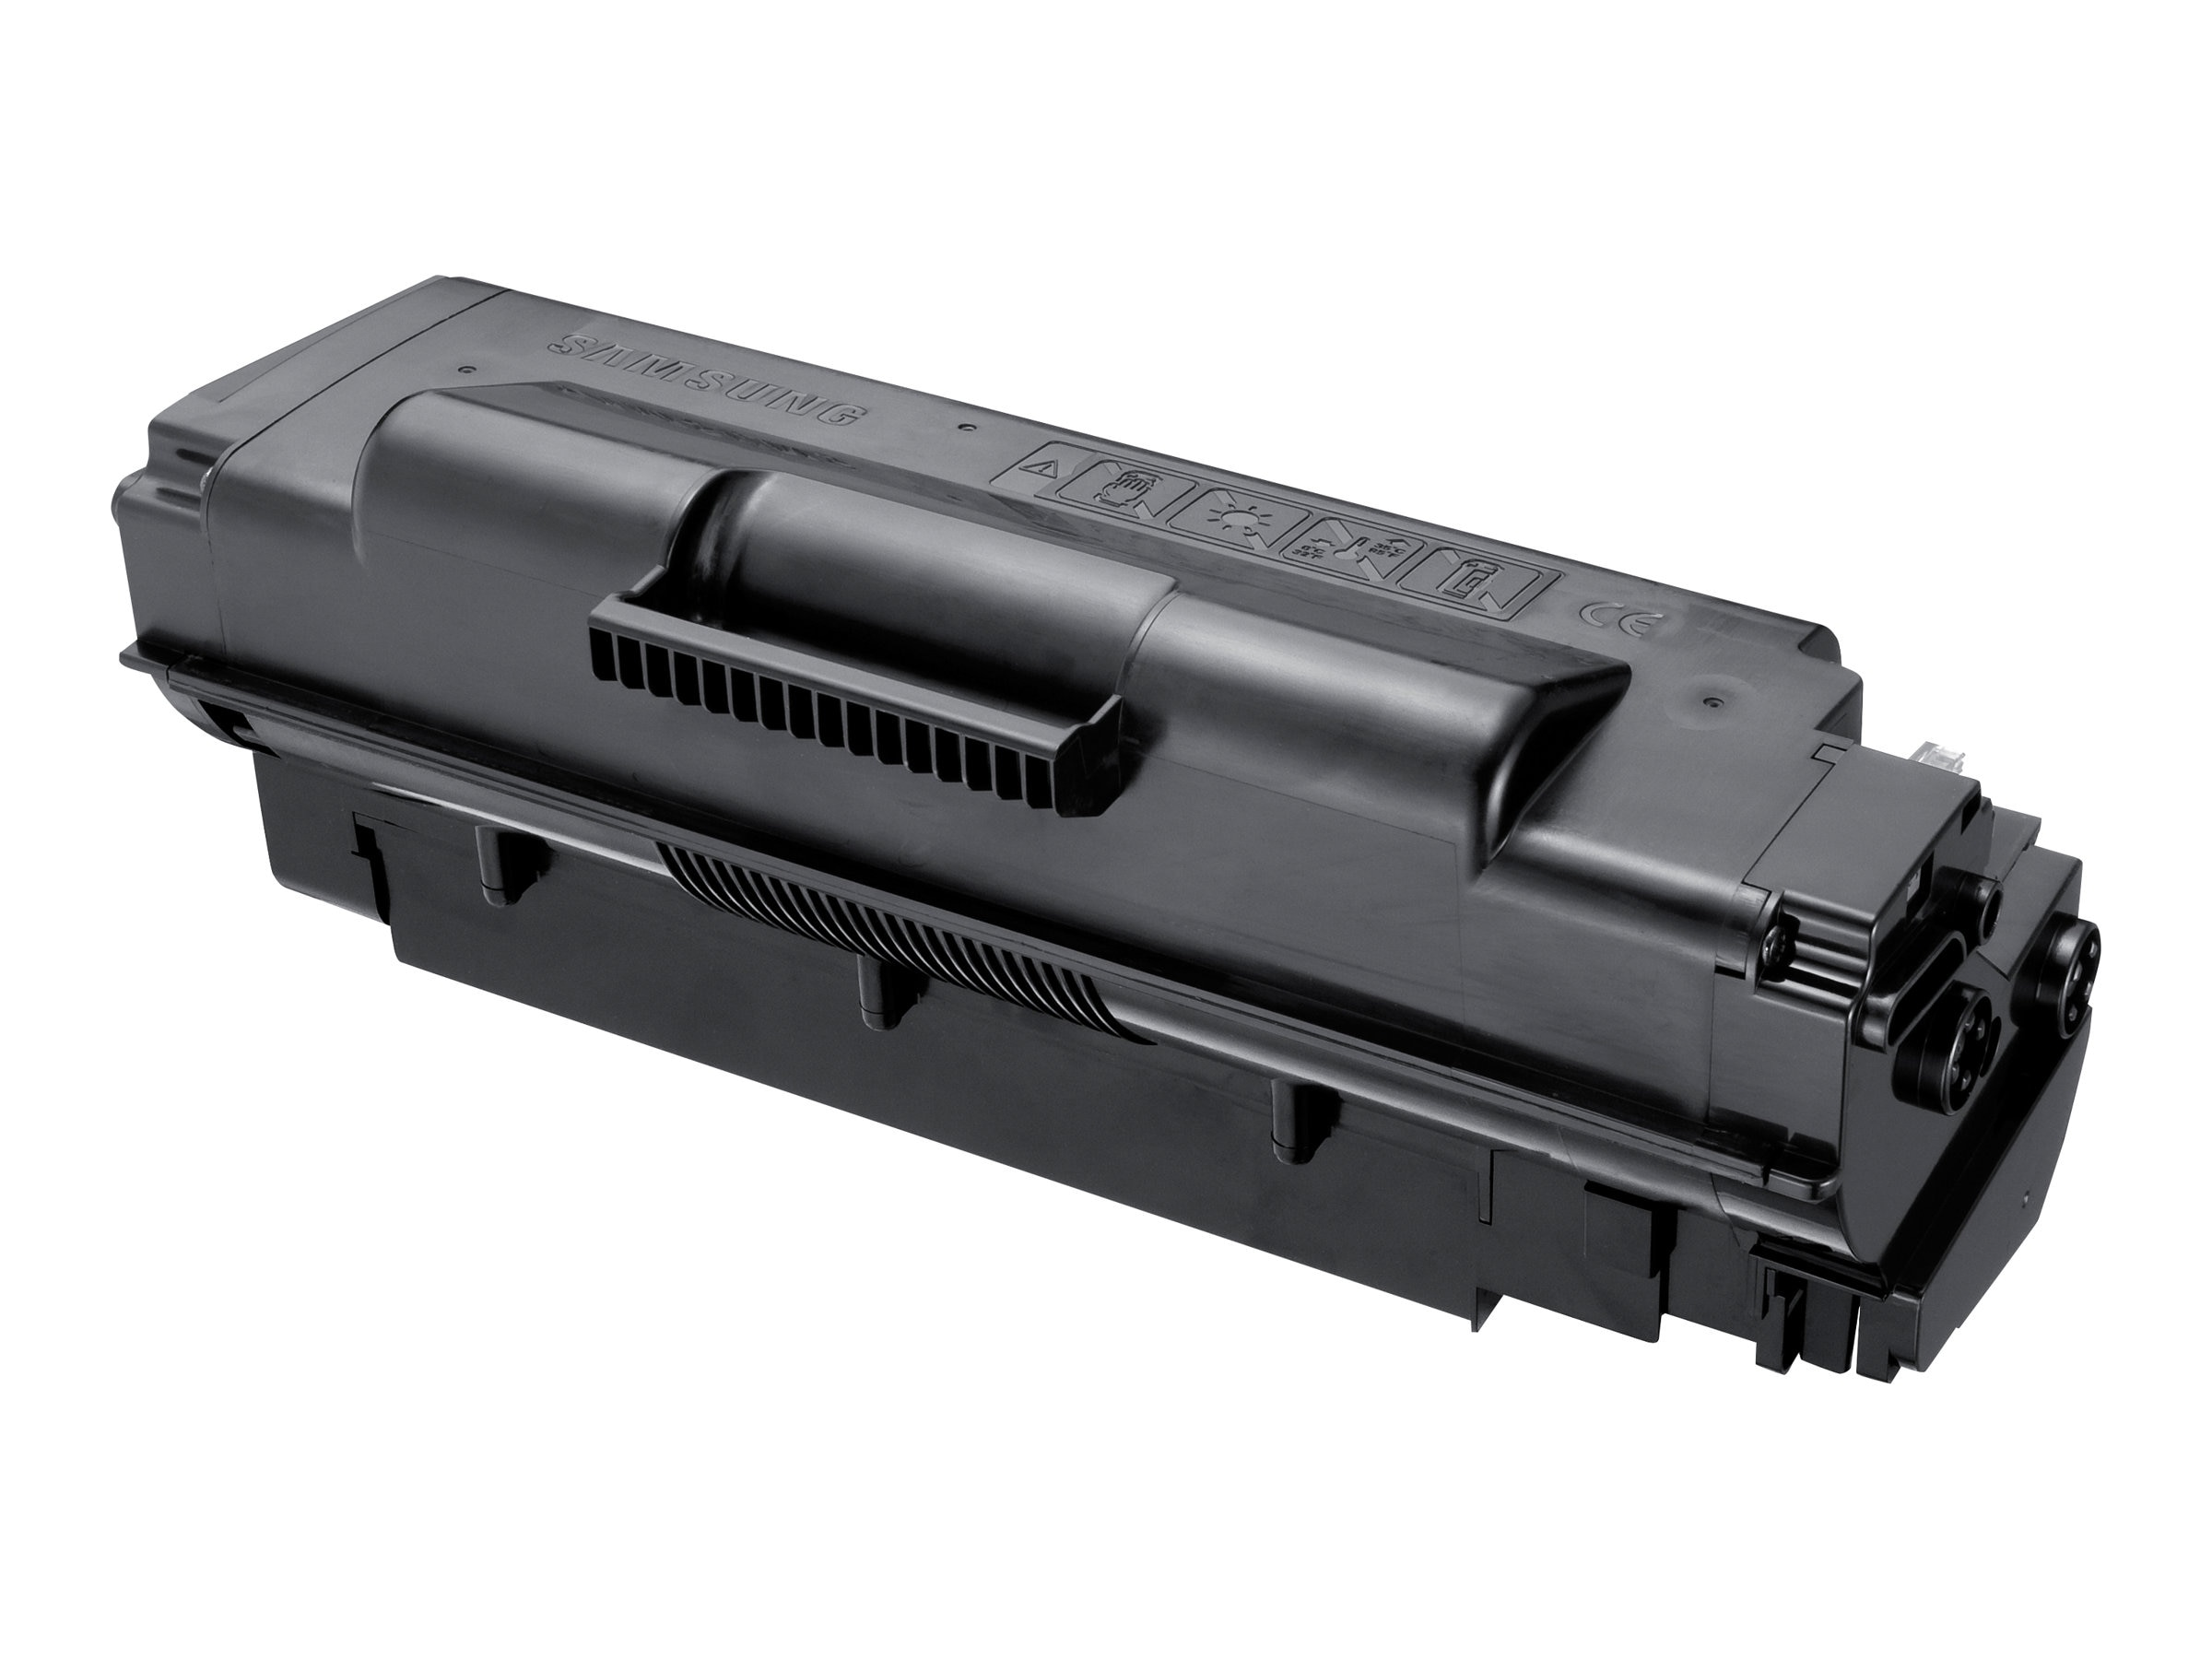 Samsung Black High Yield Toner Cartridge for ML-4512ND, ML-5012ND & ML-5017ND, MLT-D307L